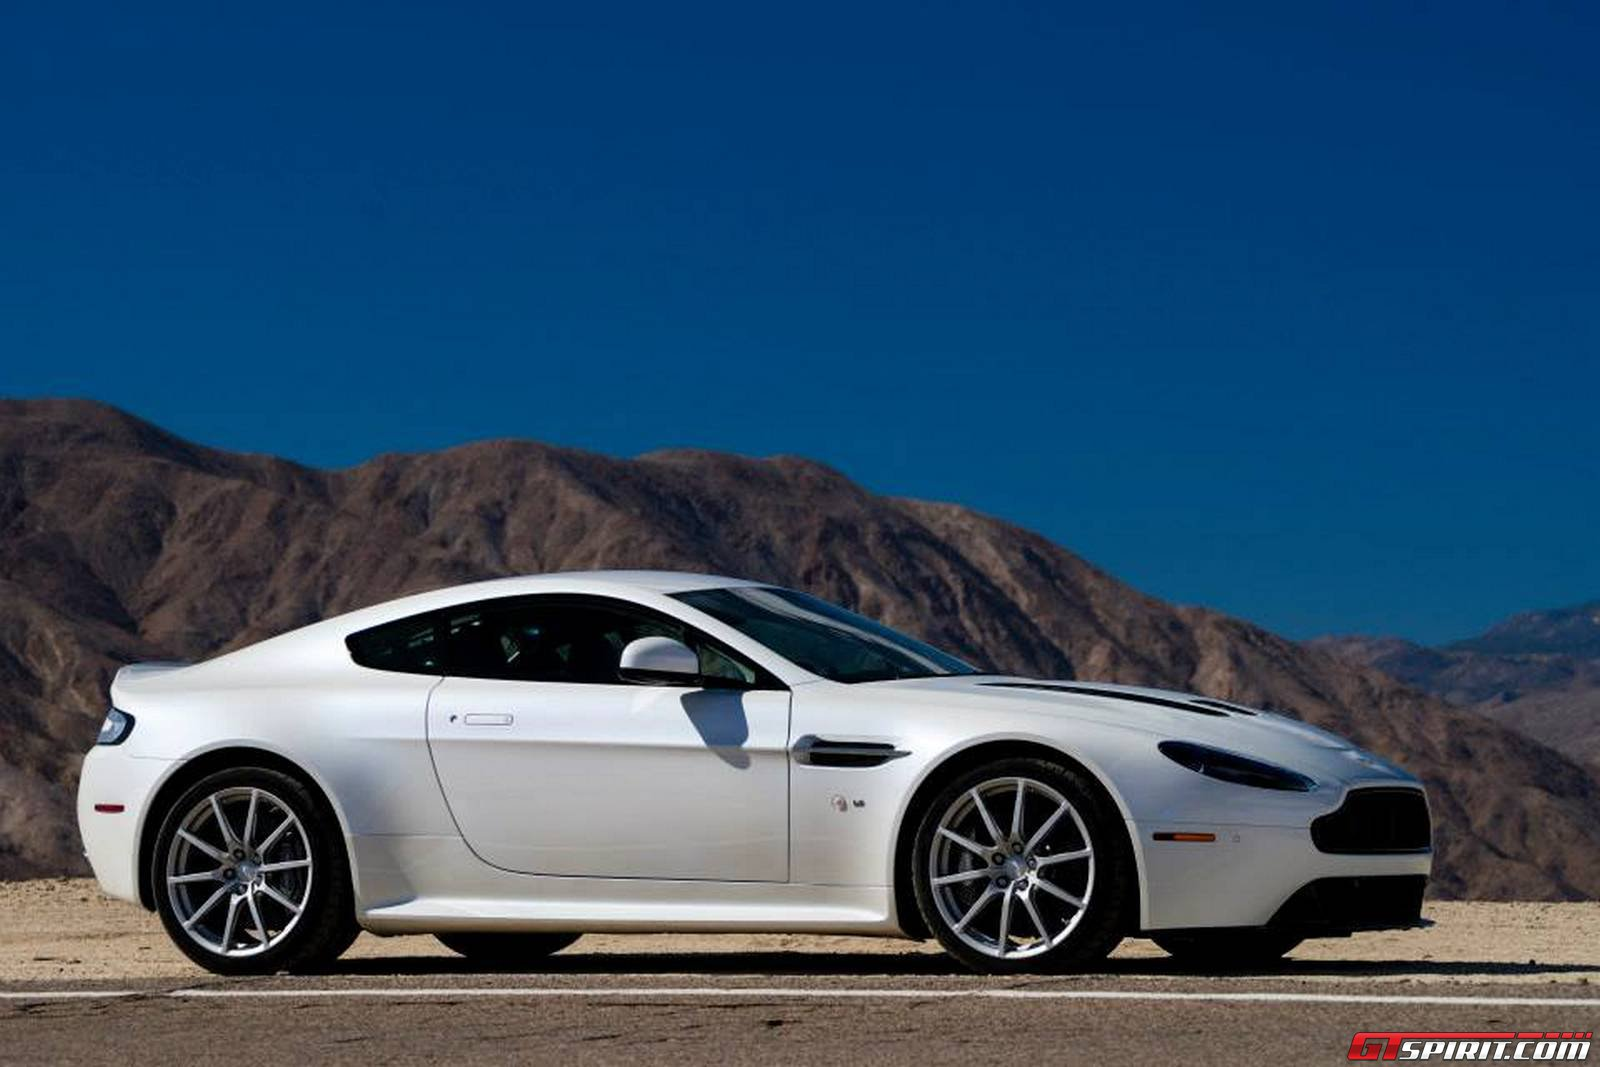 white aston martin v12 vantage s in palm springs california gtspirit. Black Bedroom Furniture Sets. Home Design Ideas